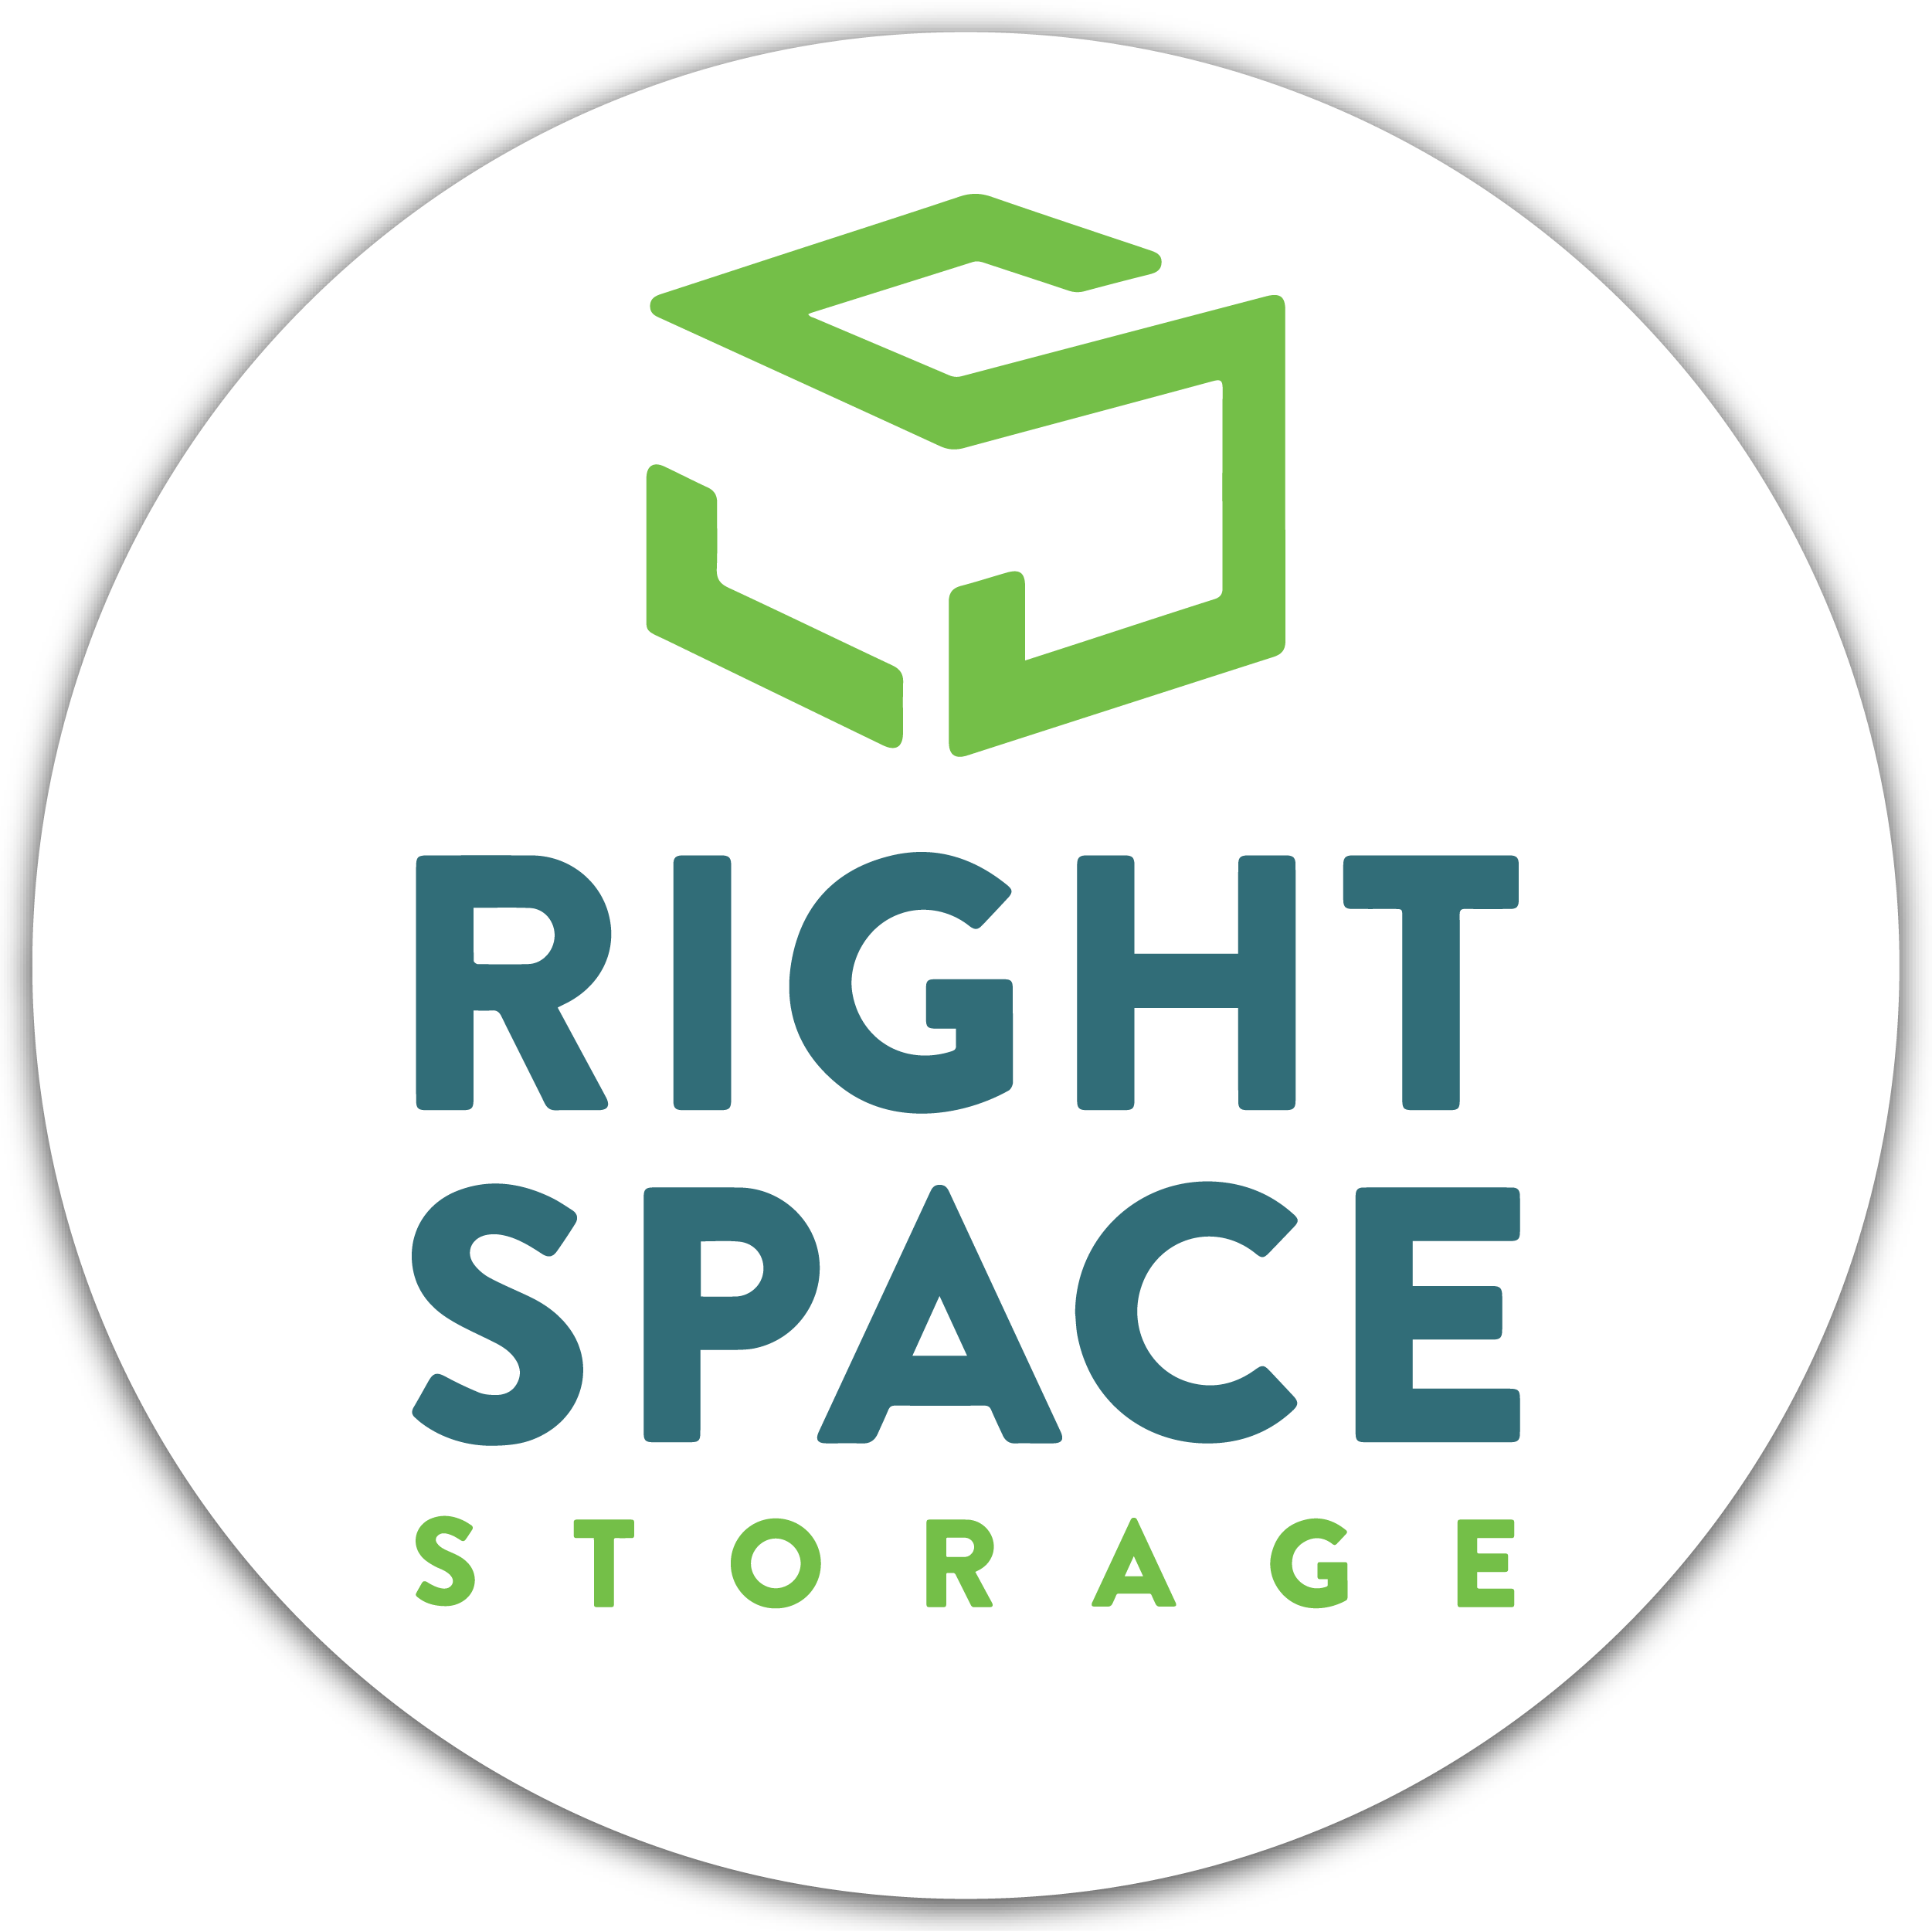 Right Space